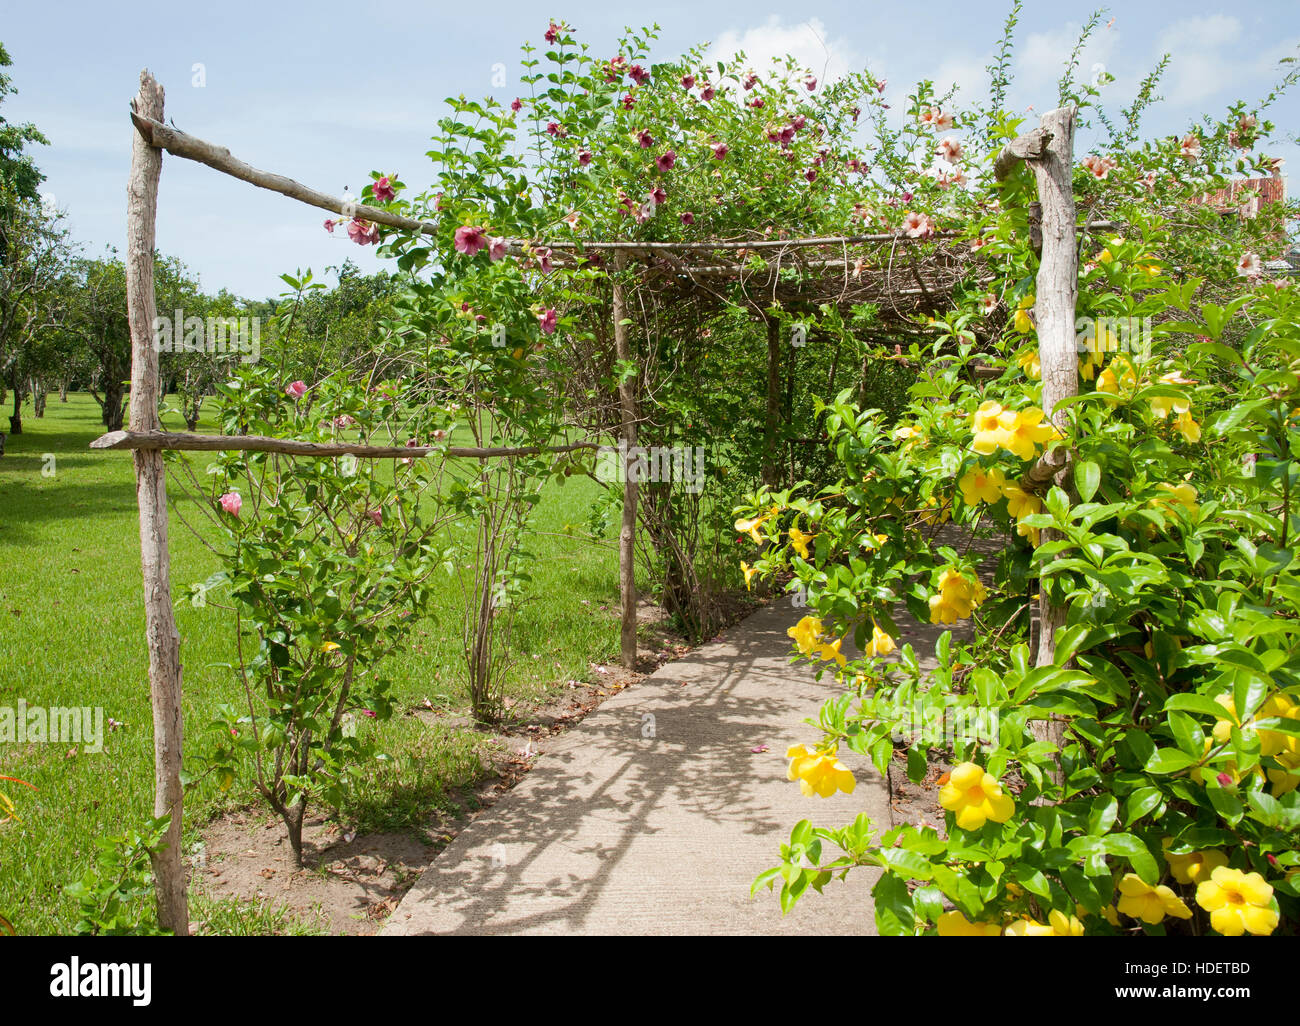 Pergola with flower in Belize City botanical garden (Belize). - Stock Image